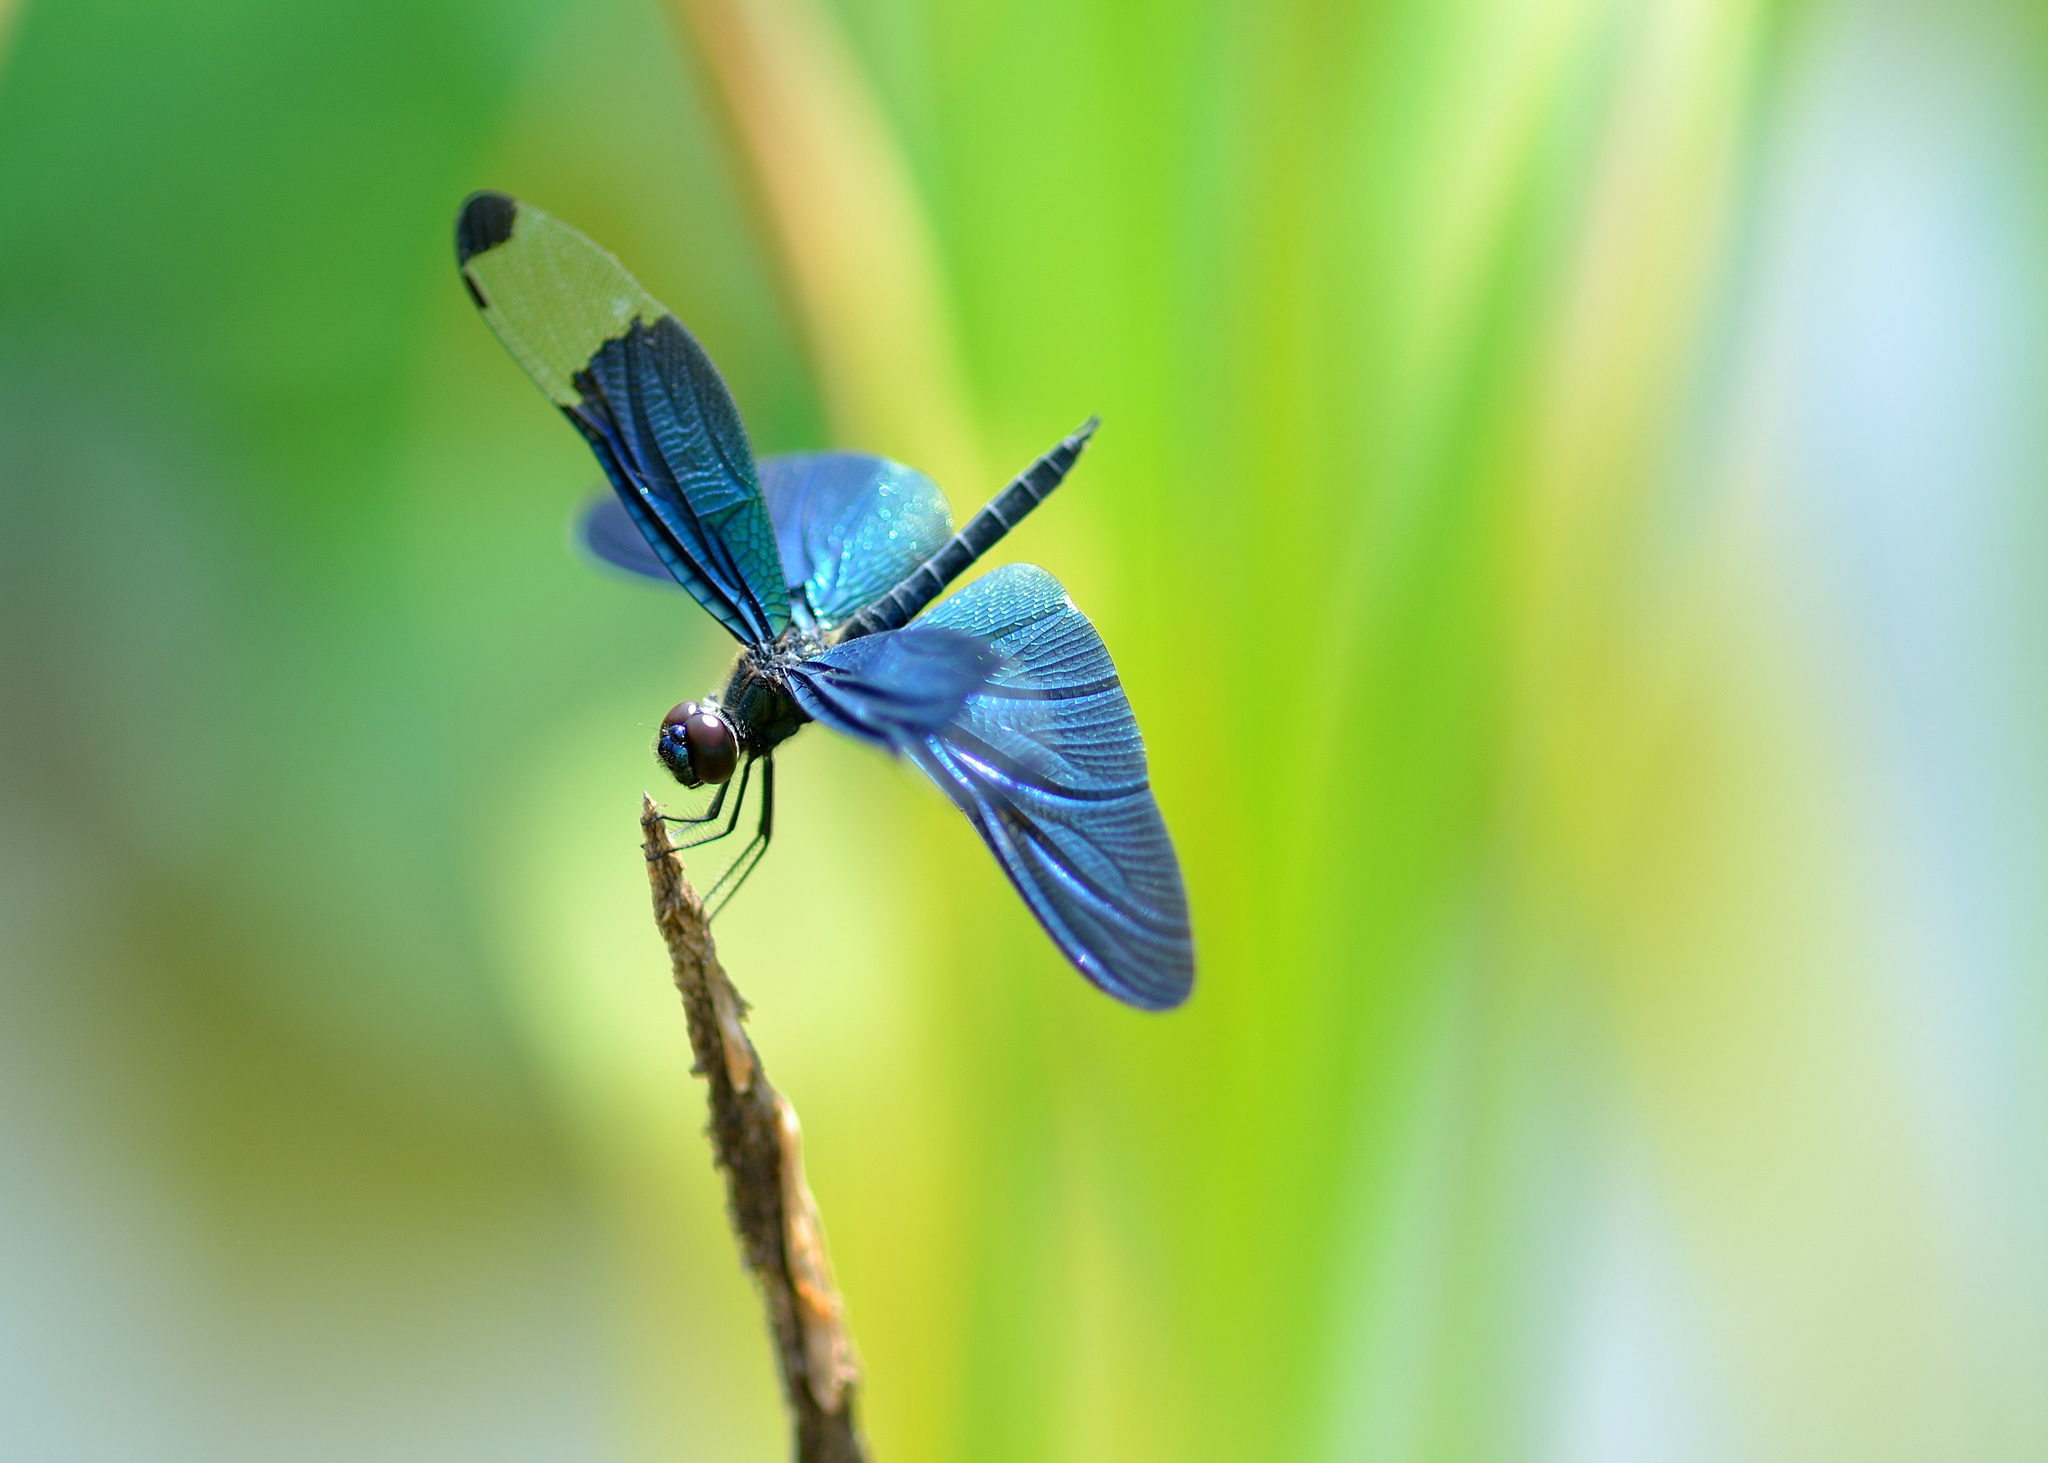 Blue Dragonfly Wallpaper For Android 3707 Wallpaper Wallpaper 2048x1463